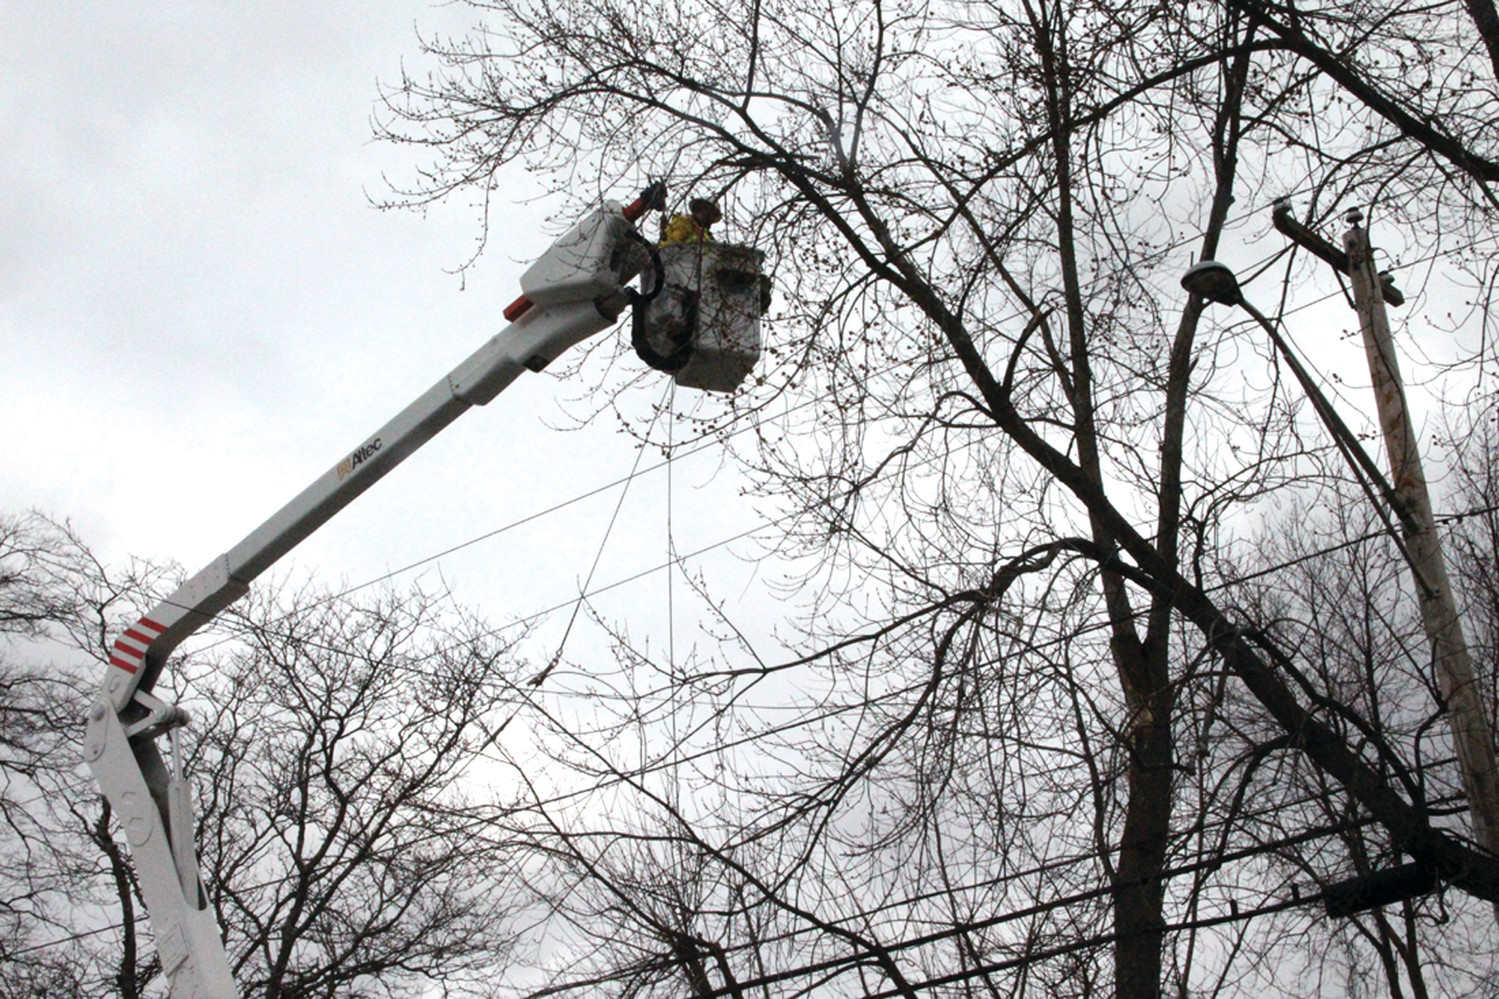 WIRING IN THE WIND: A crew worked on West Shore Road Saturday morning to restore power to Conimicut.